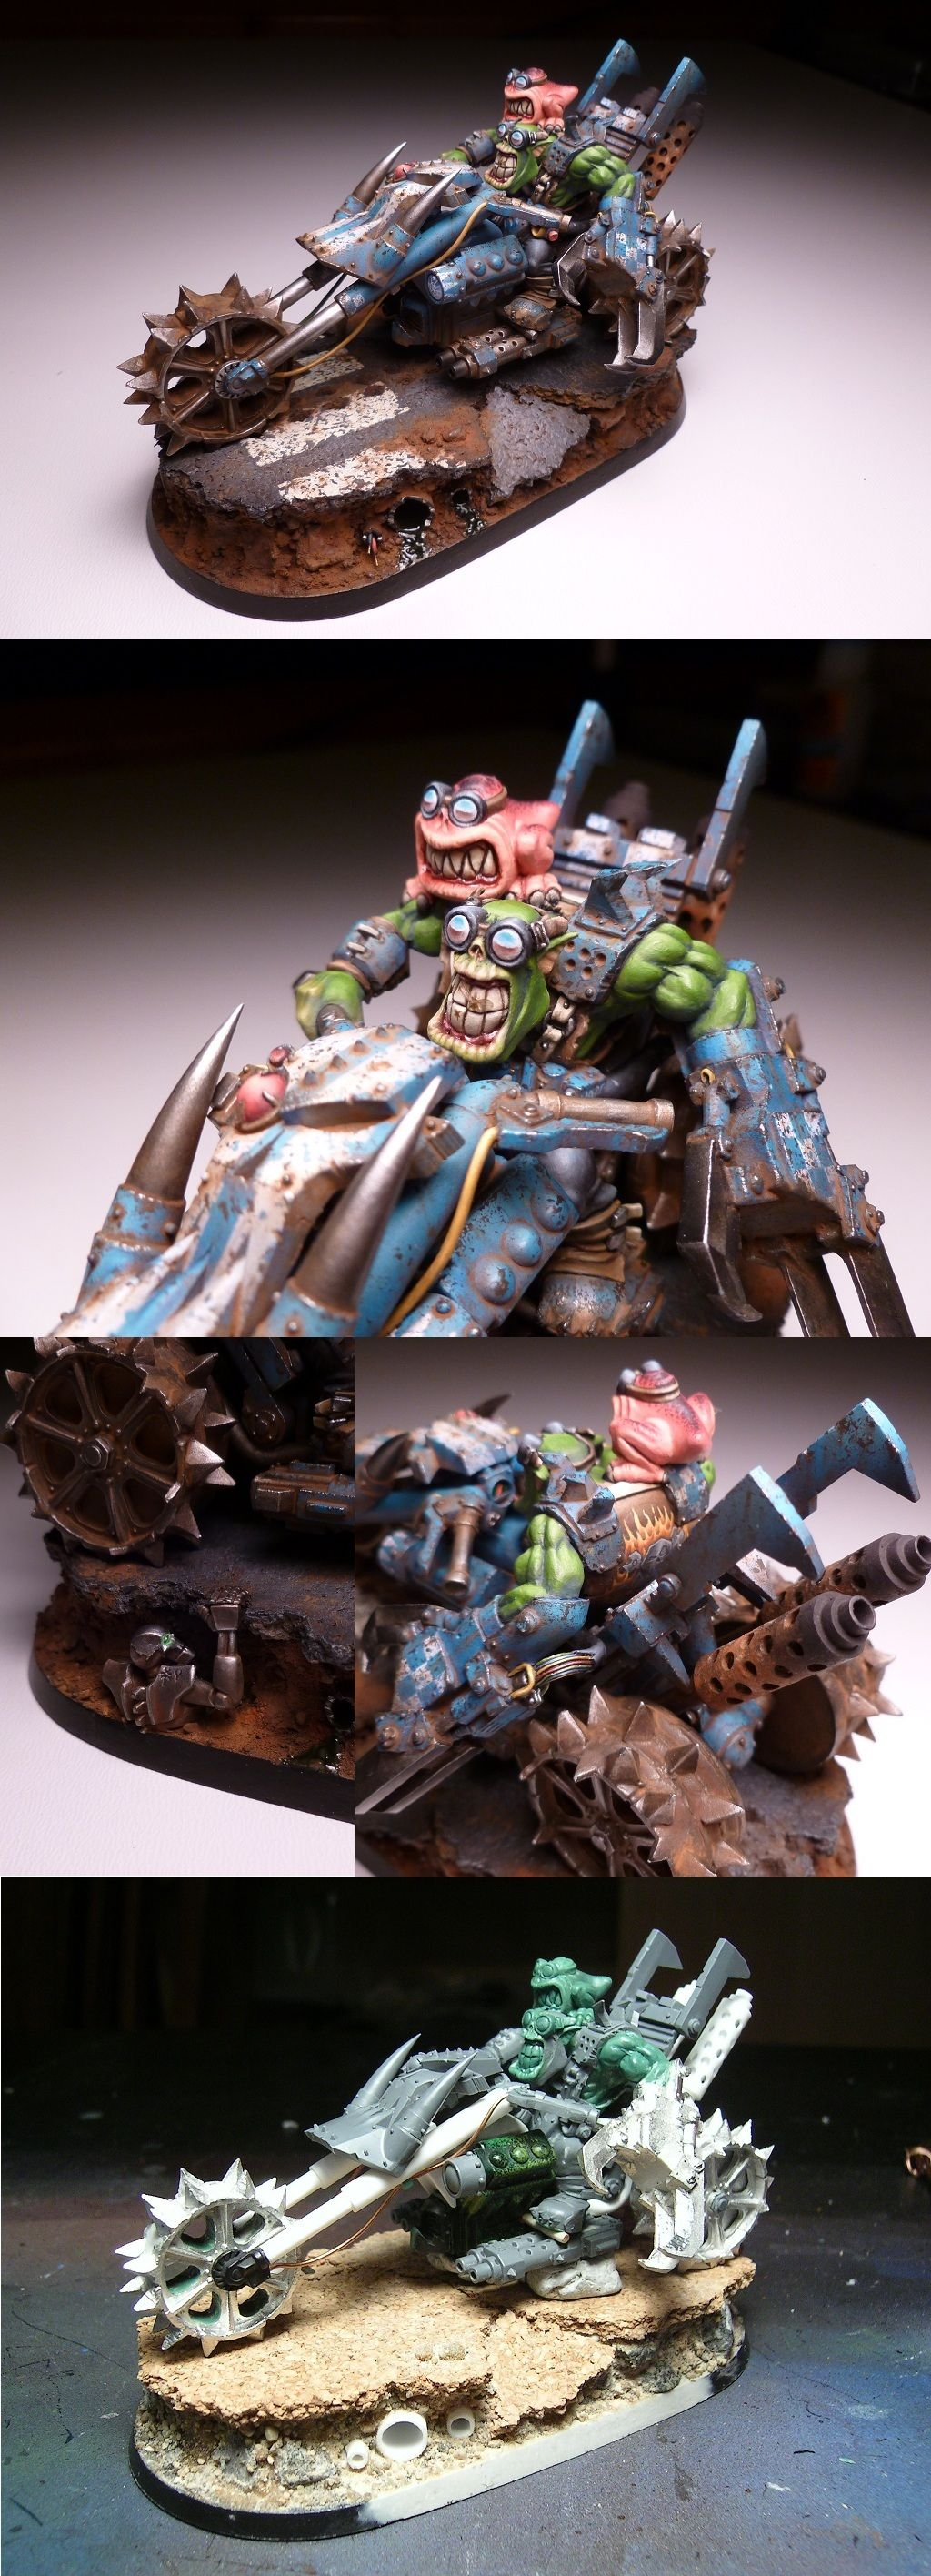 Ork Warboss Roadrippa (and Da Speed Squig), NAGD Chicago 2011 Slayer Sword